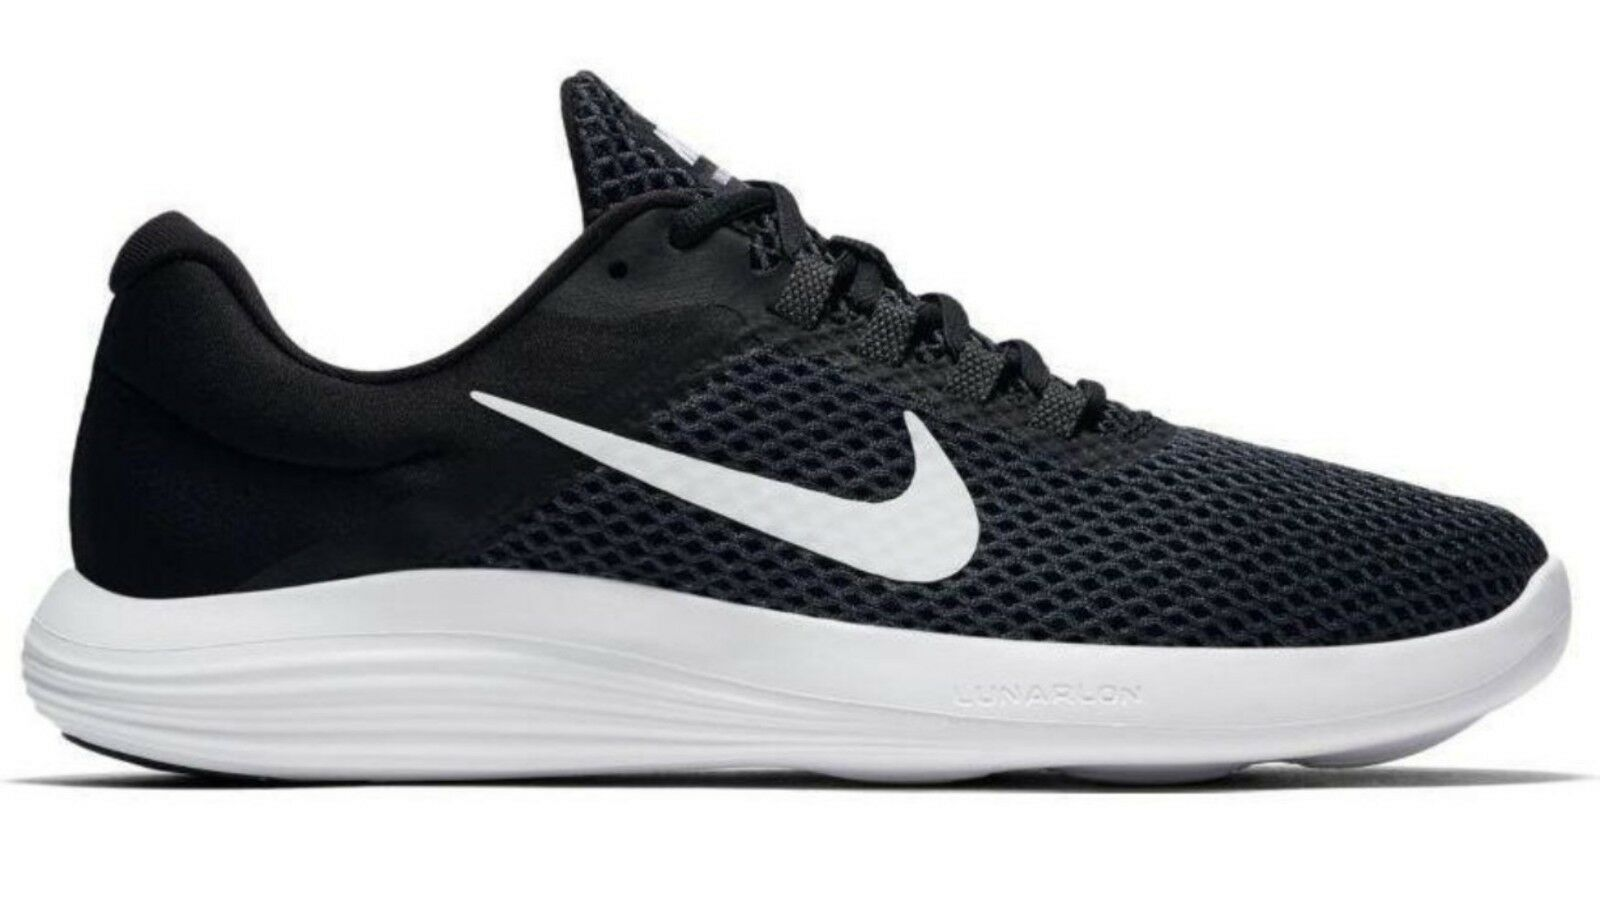 LATEST RELEASE Nike LunarConverge 2 Mens Running shoes (D) (001)